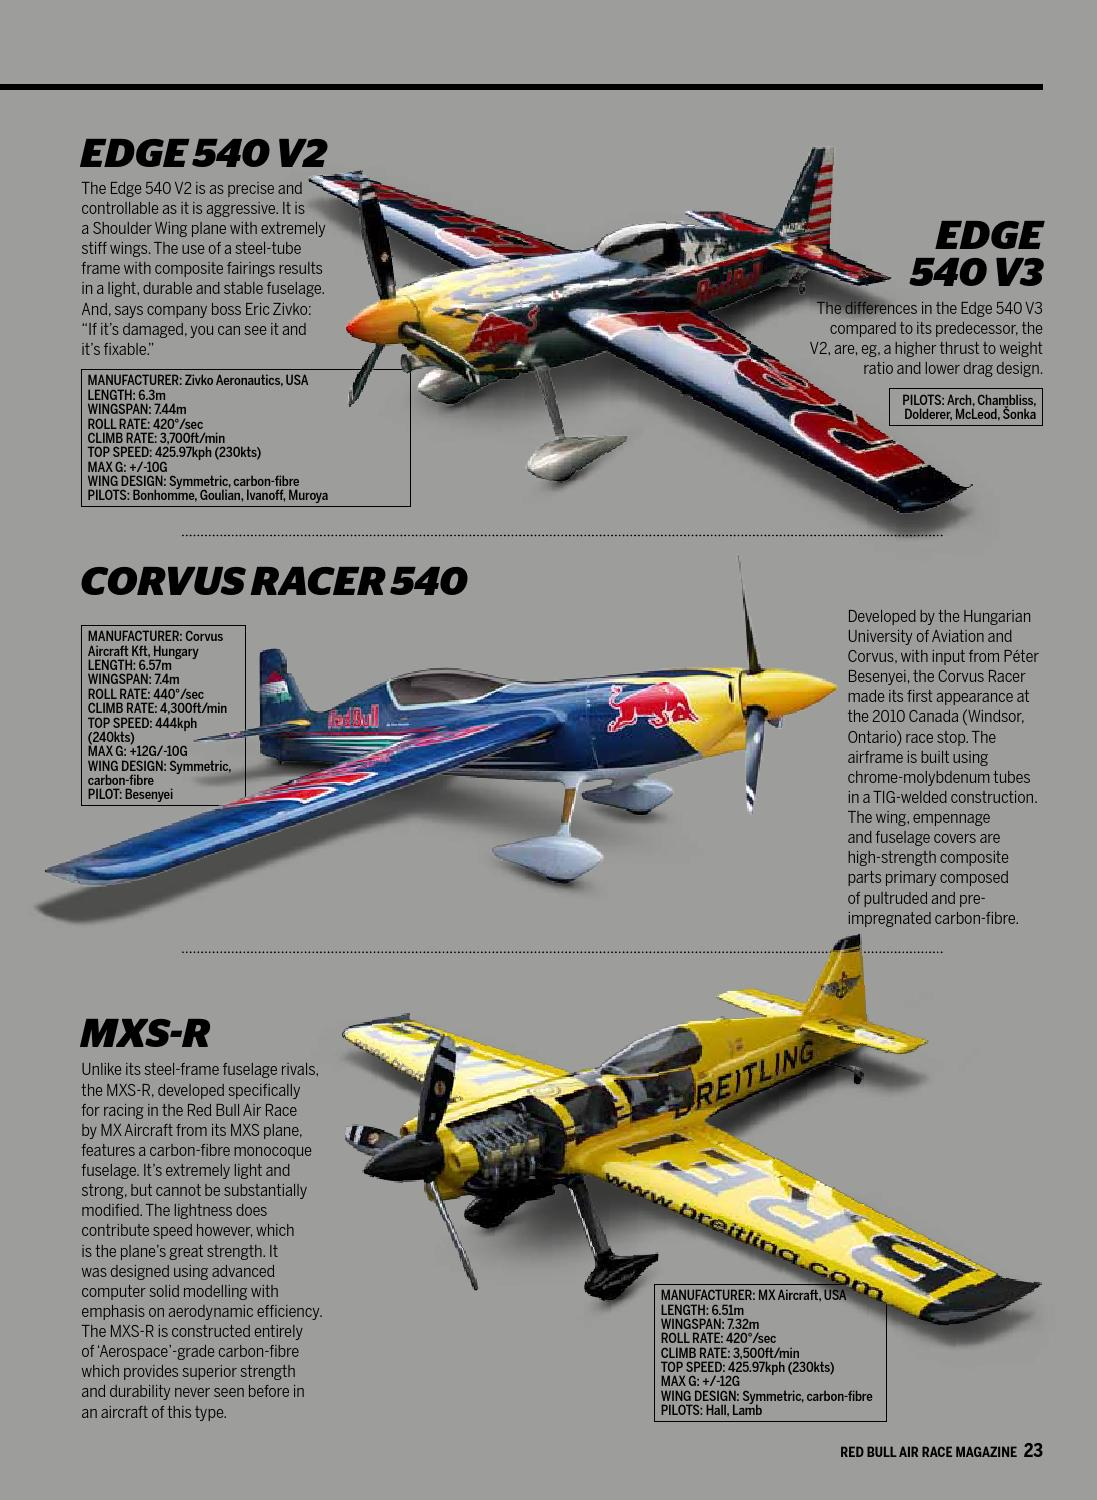 Red bull air racing planes